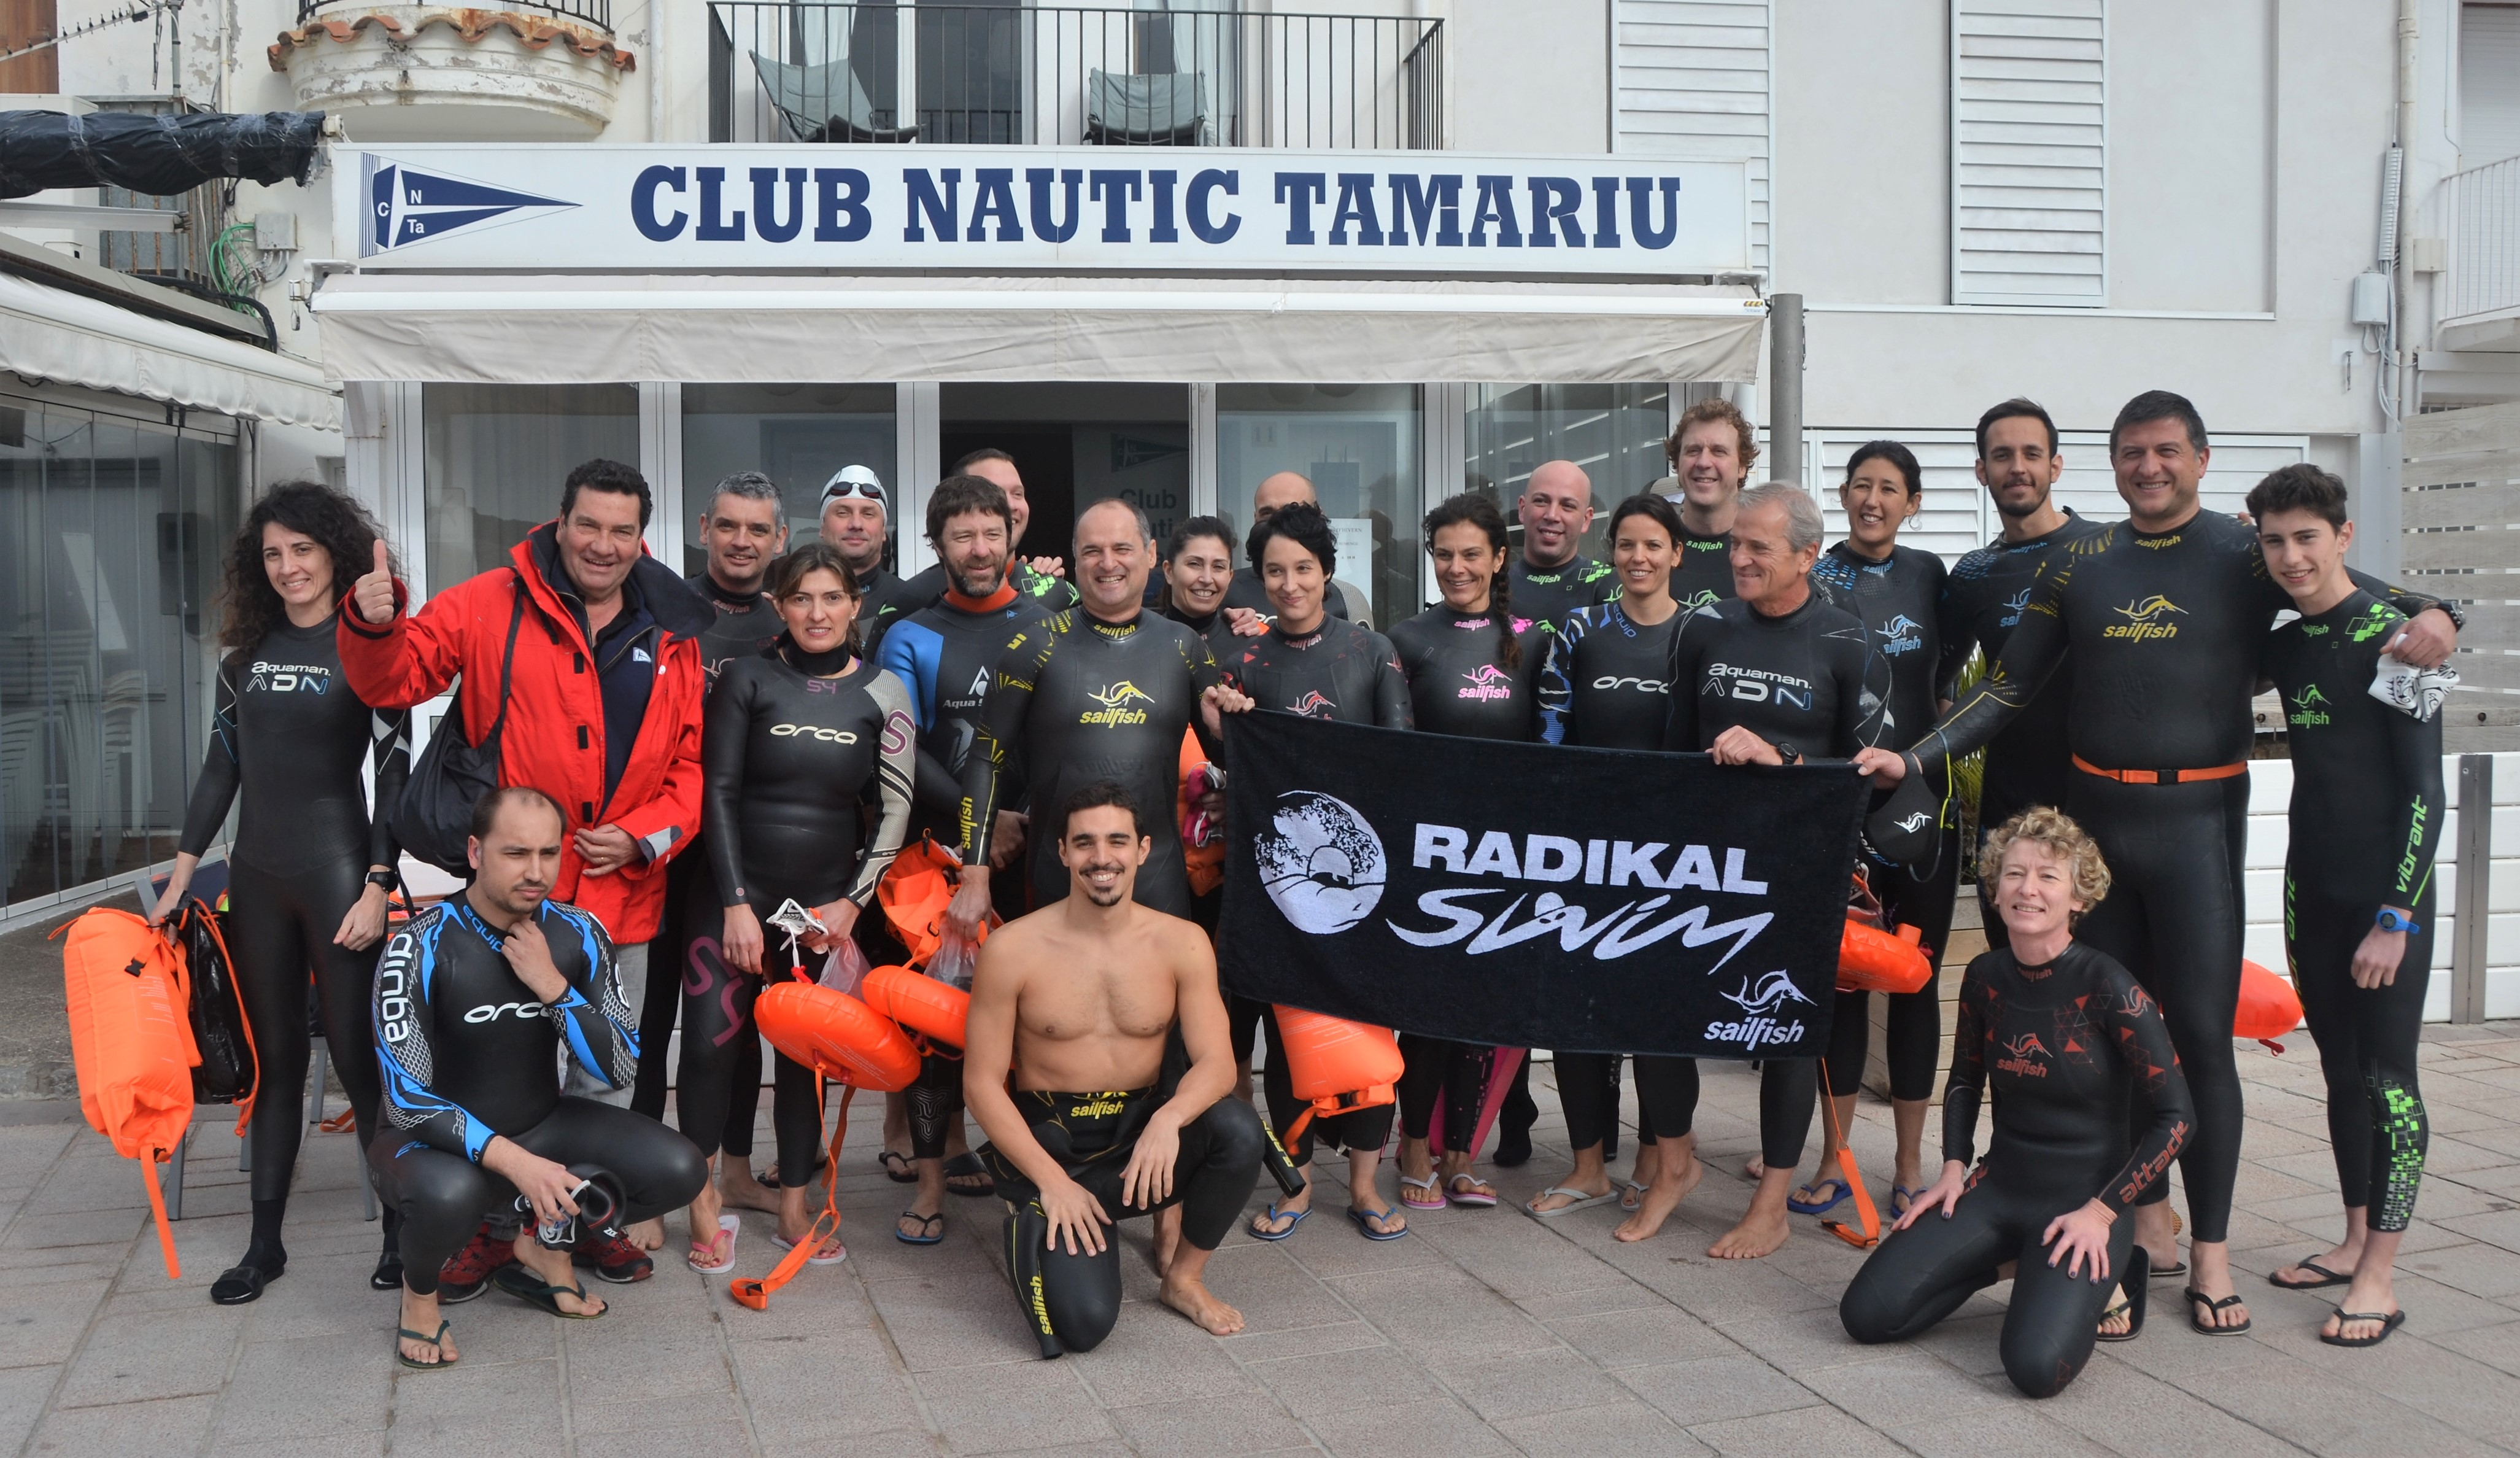 ¡Un gran Saturday Workout en Tamariu!